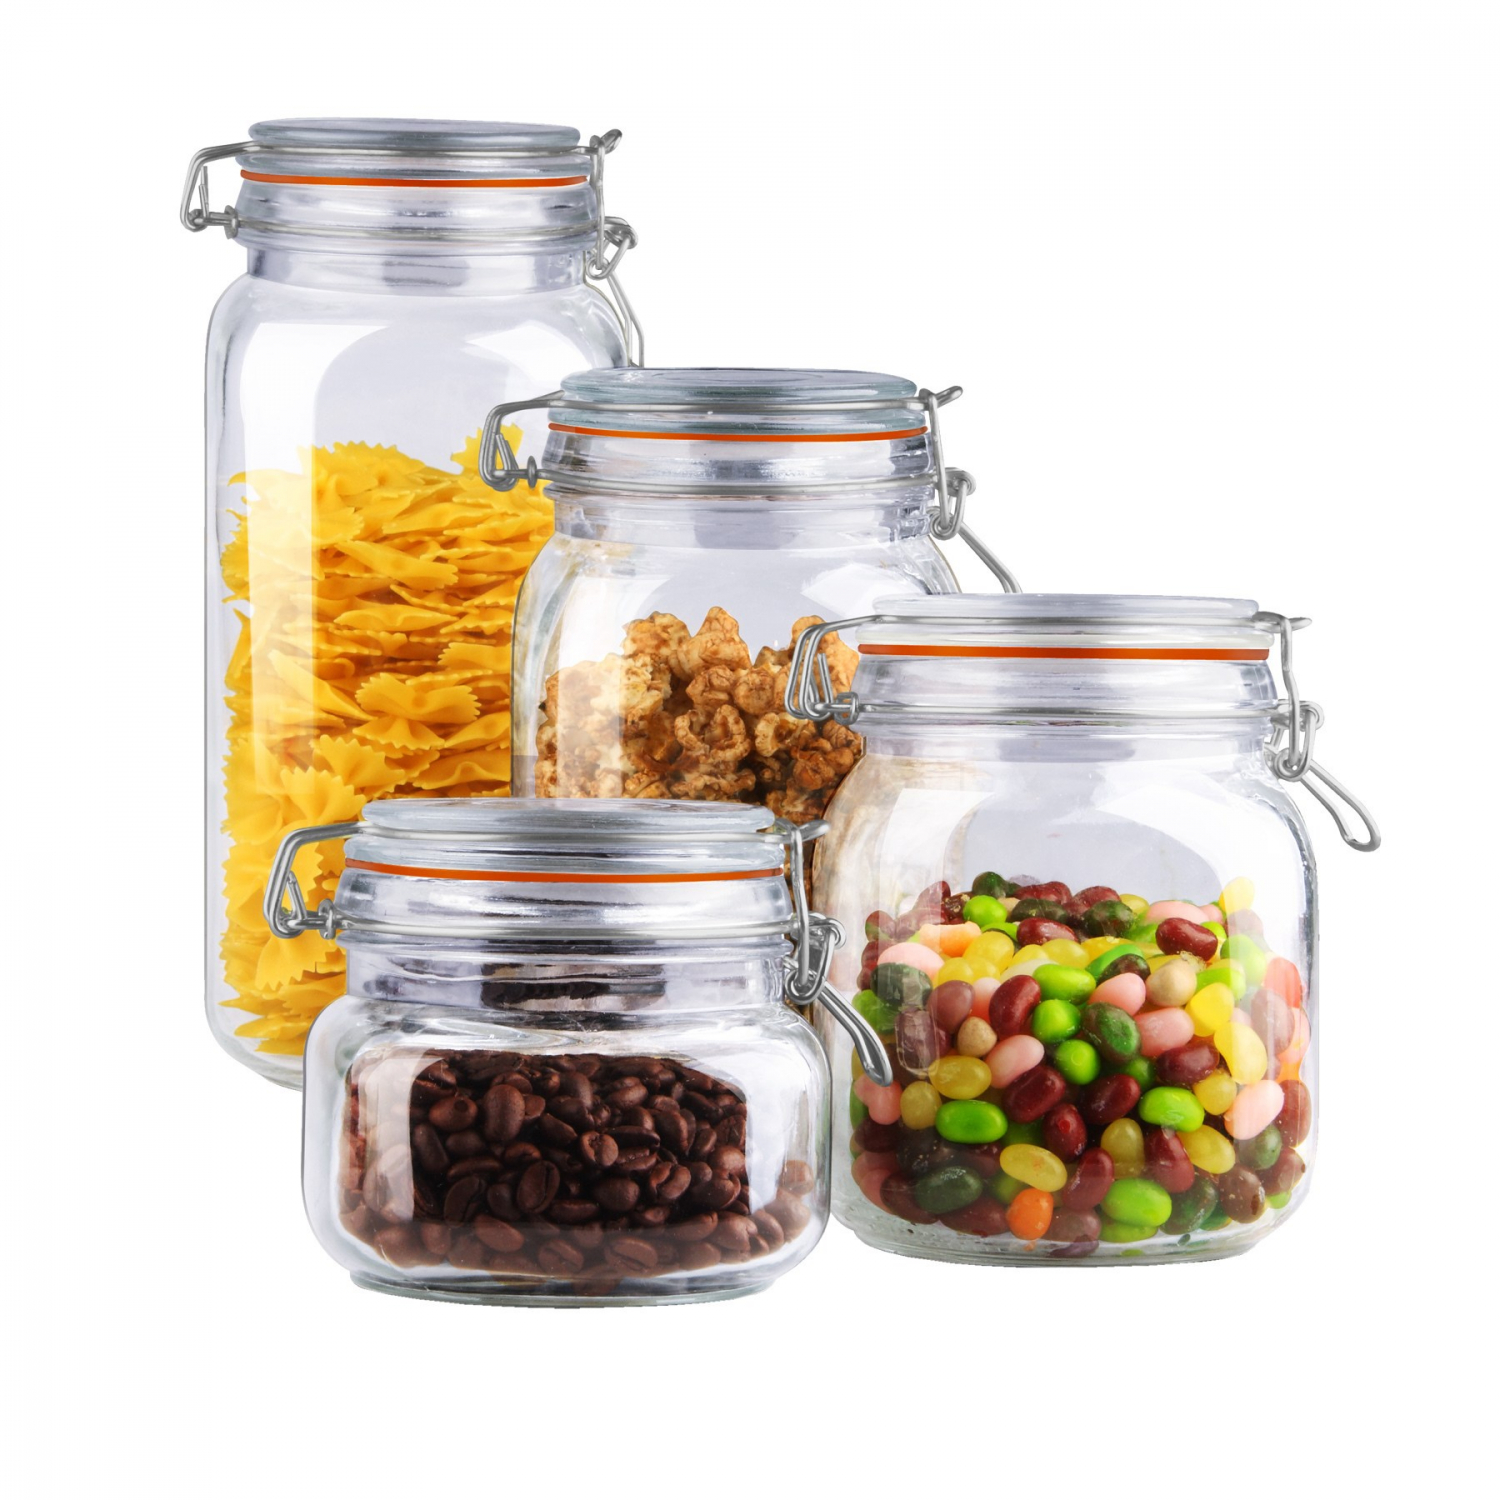 4-piece clear glass canister set durable home kitchen food storage container 732618916427   ebay